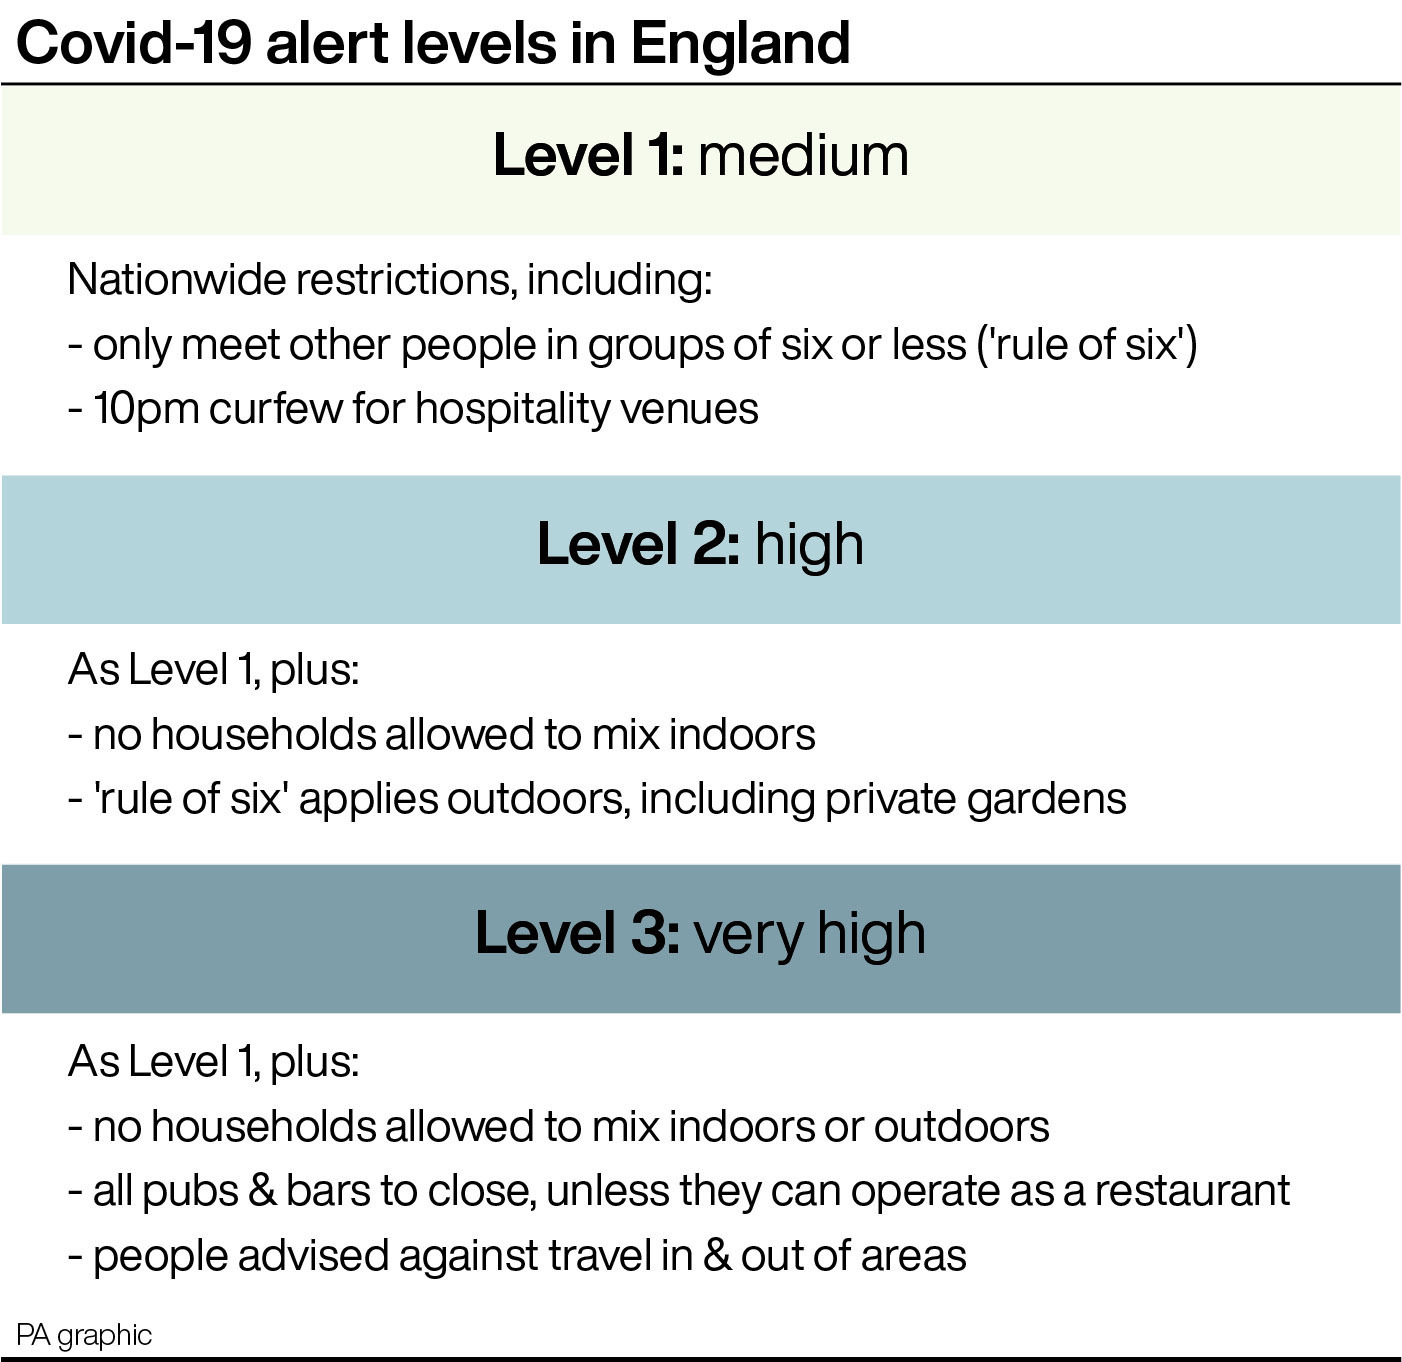 Have your say: Should England have had a 'circuit breaker' national lockdown?